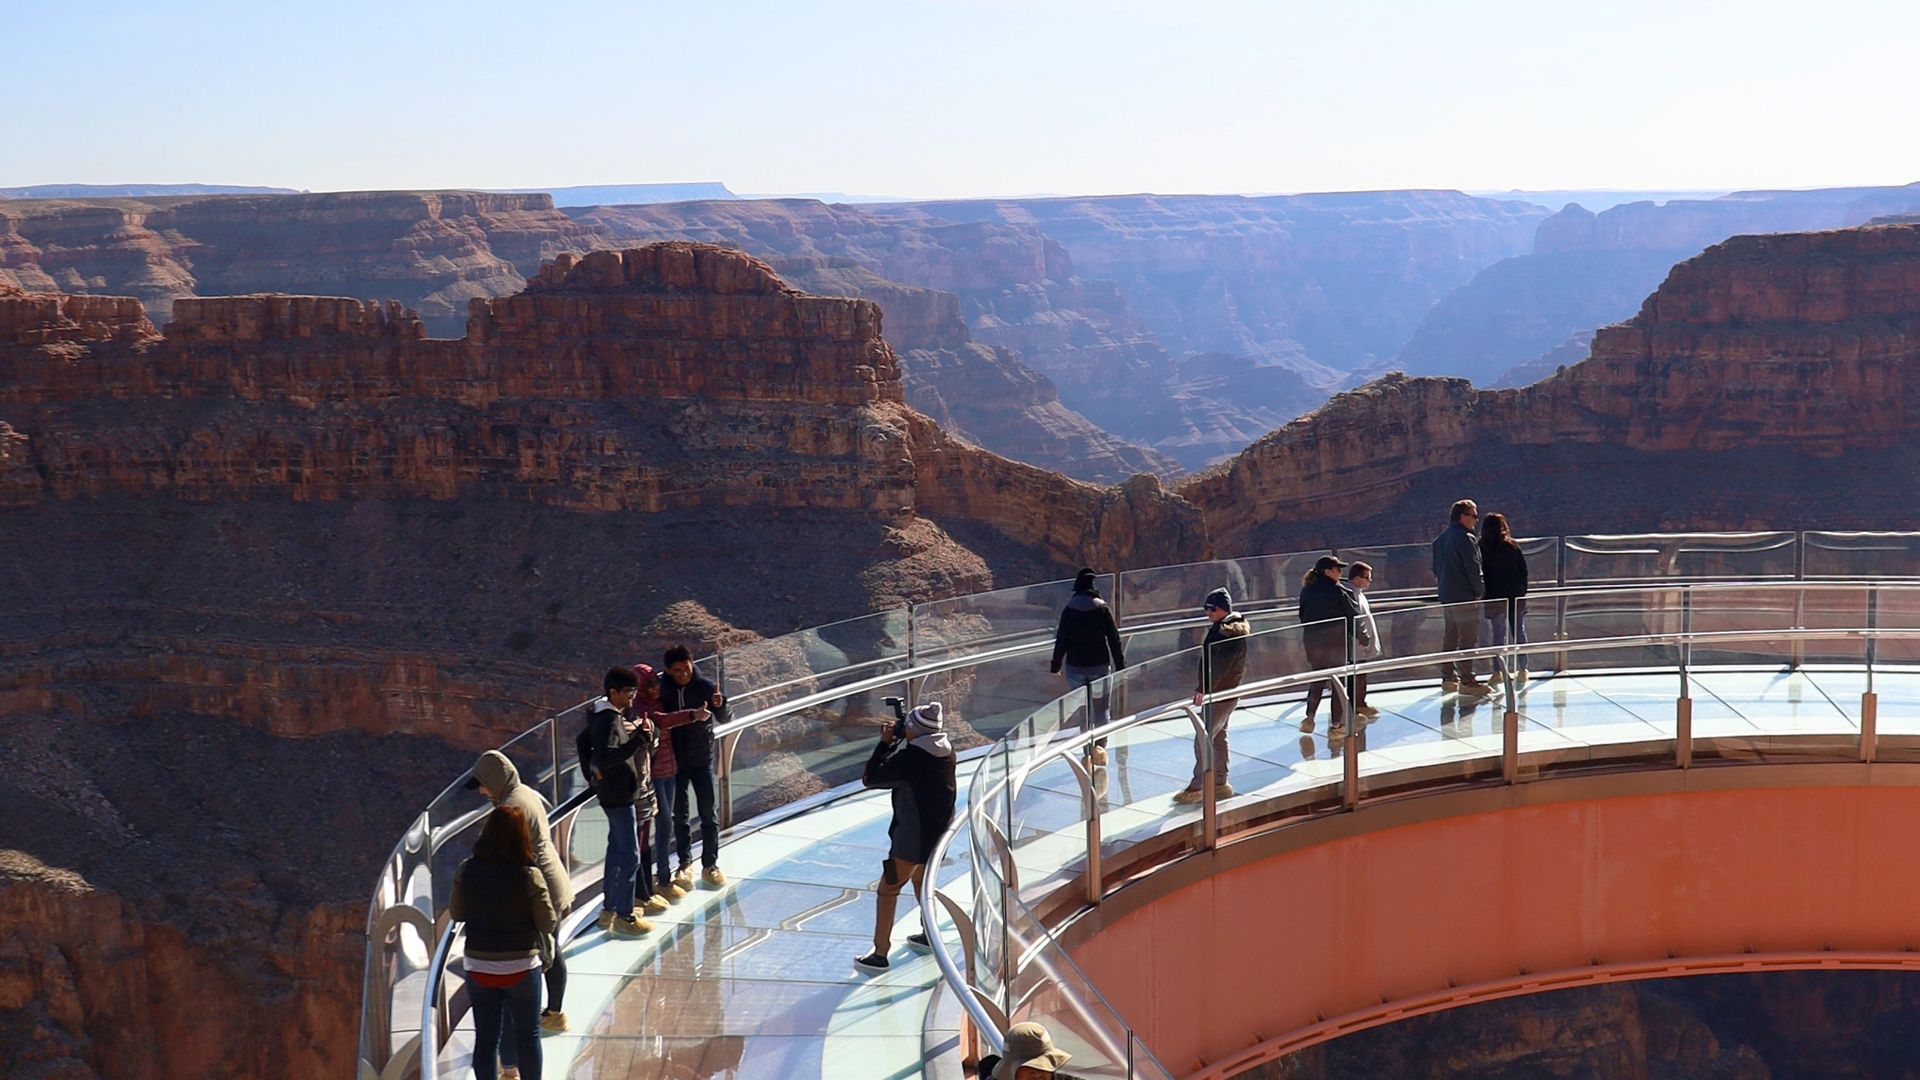 Guests on the Skywalk at Sunrise